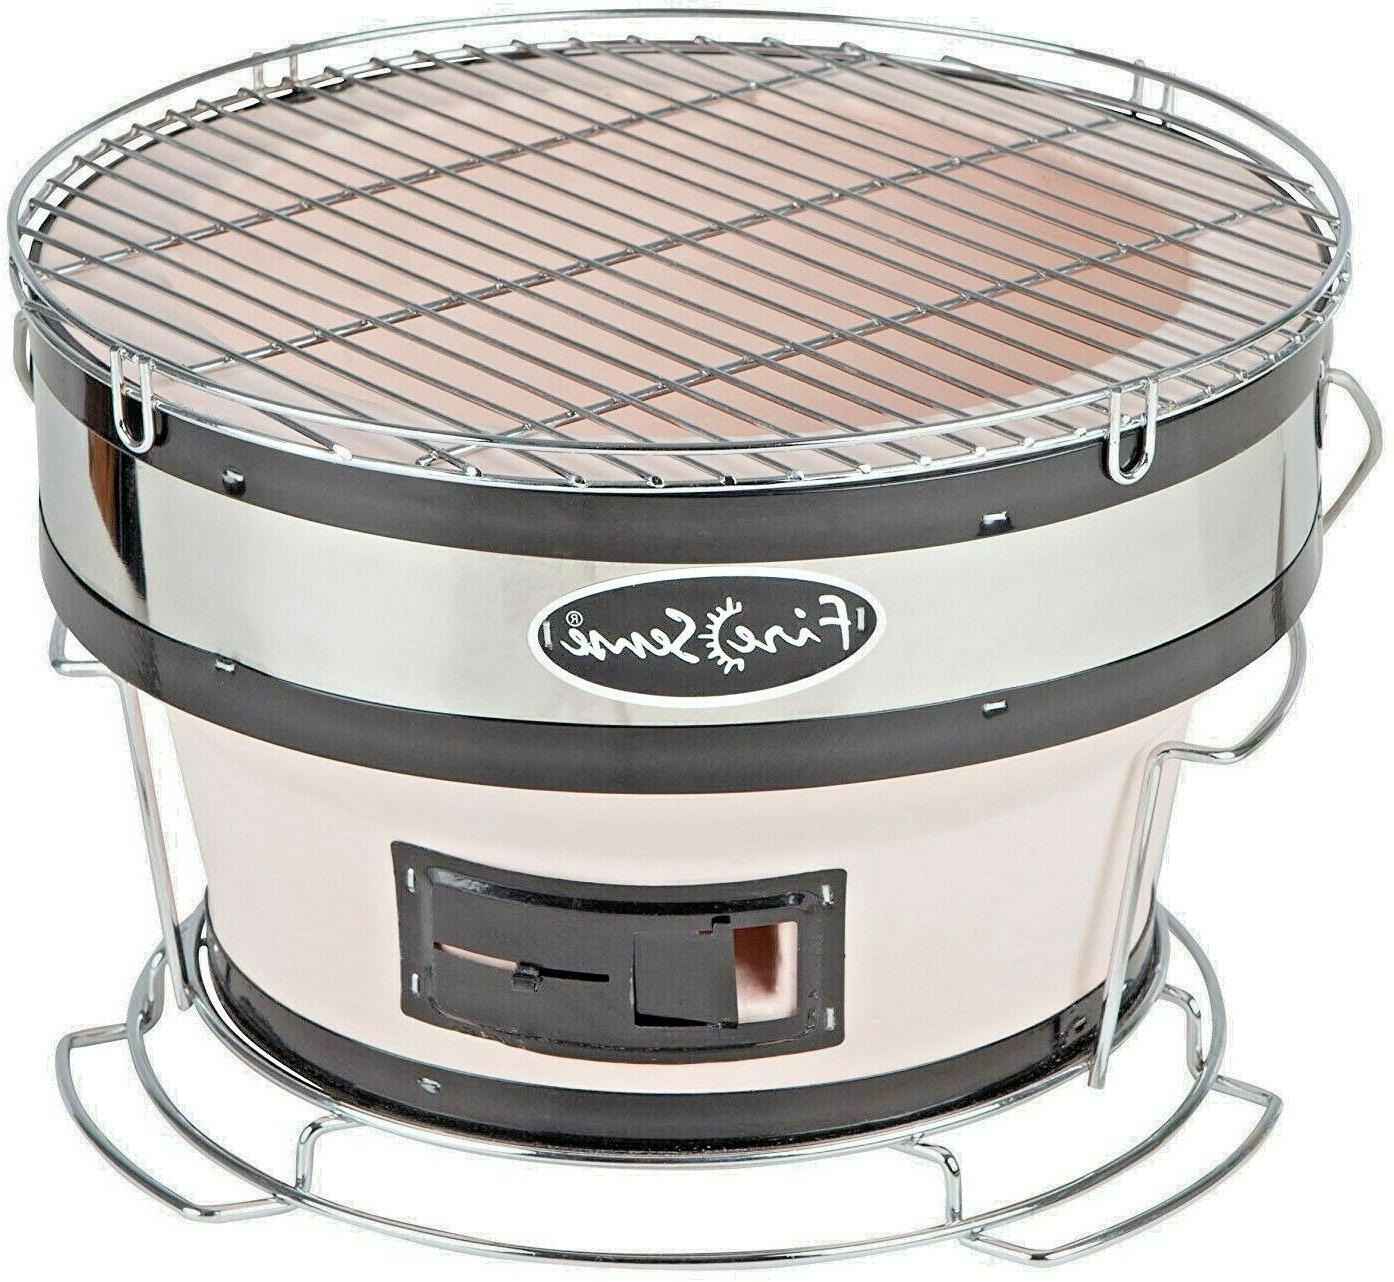 portable small yakatori charcoal bbq grill japanese